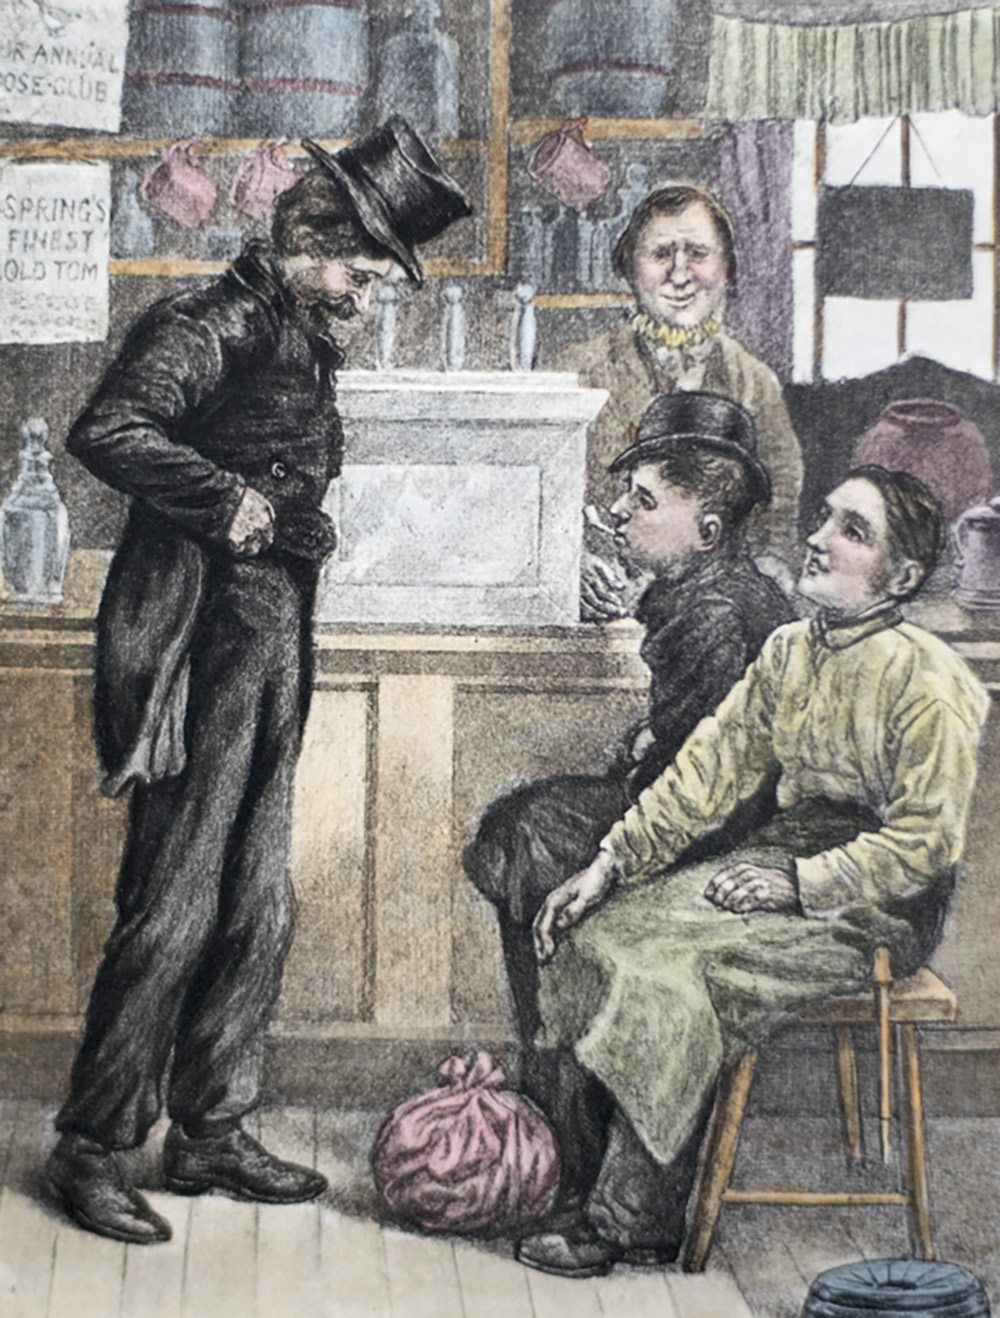 The Works of Charles Dickens (Including: Bleak House; A Tale of Two Cities; Little Dorrit; Great Expectations; Oliver Twist; A Christmas Carol; David Copperfield; Dombey & Son; The Old Curiosity Shop; Nicholas Nickleby).